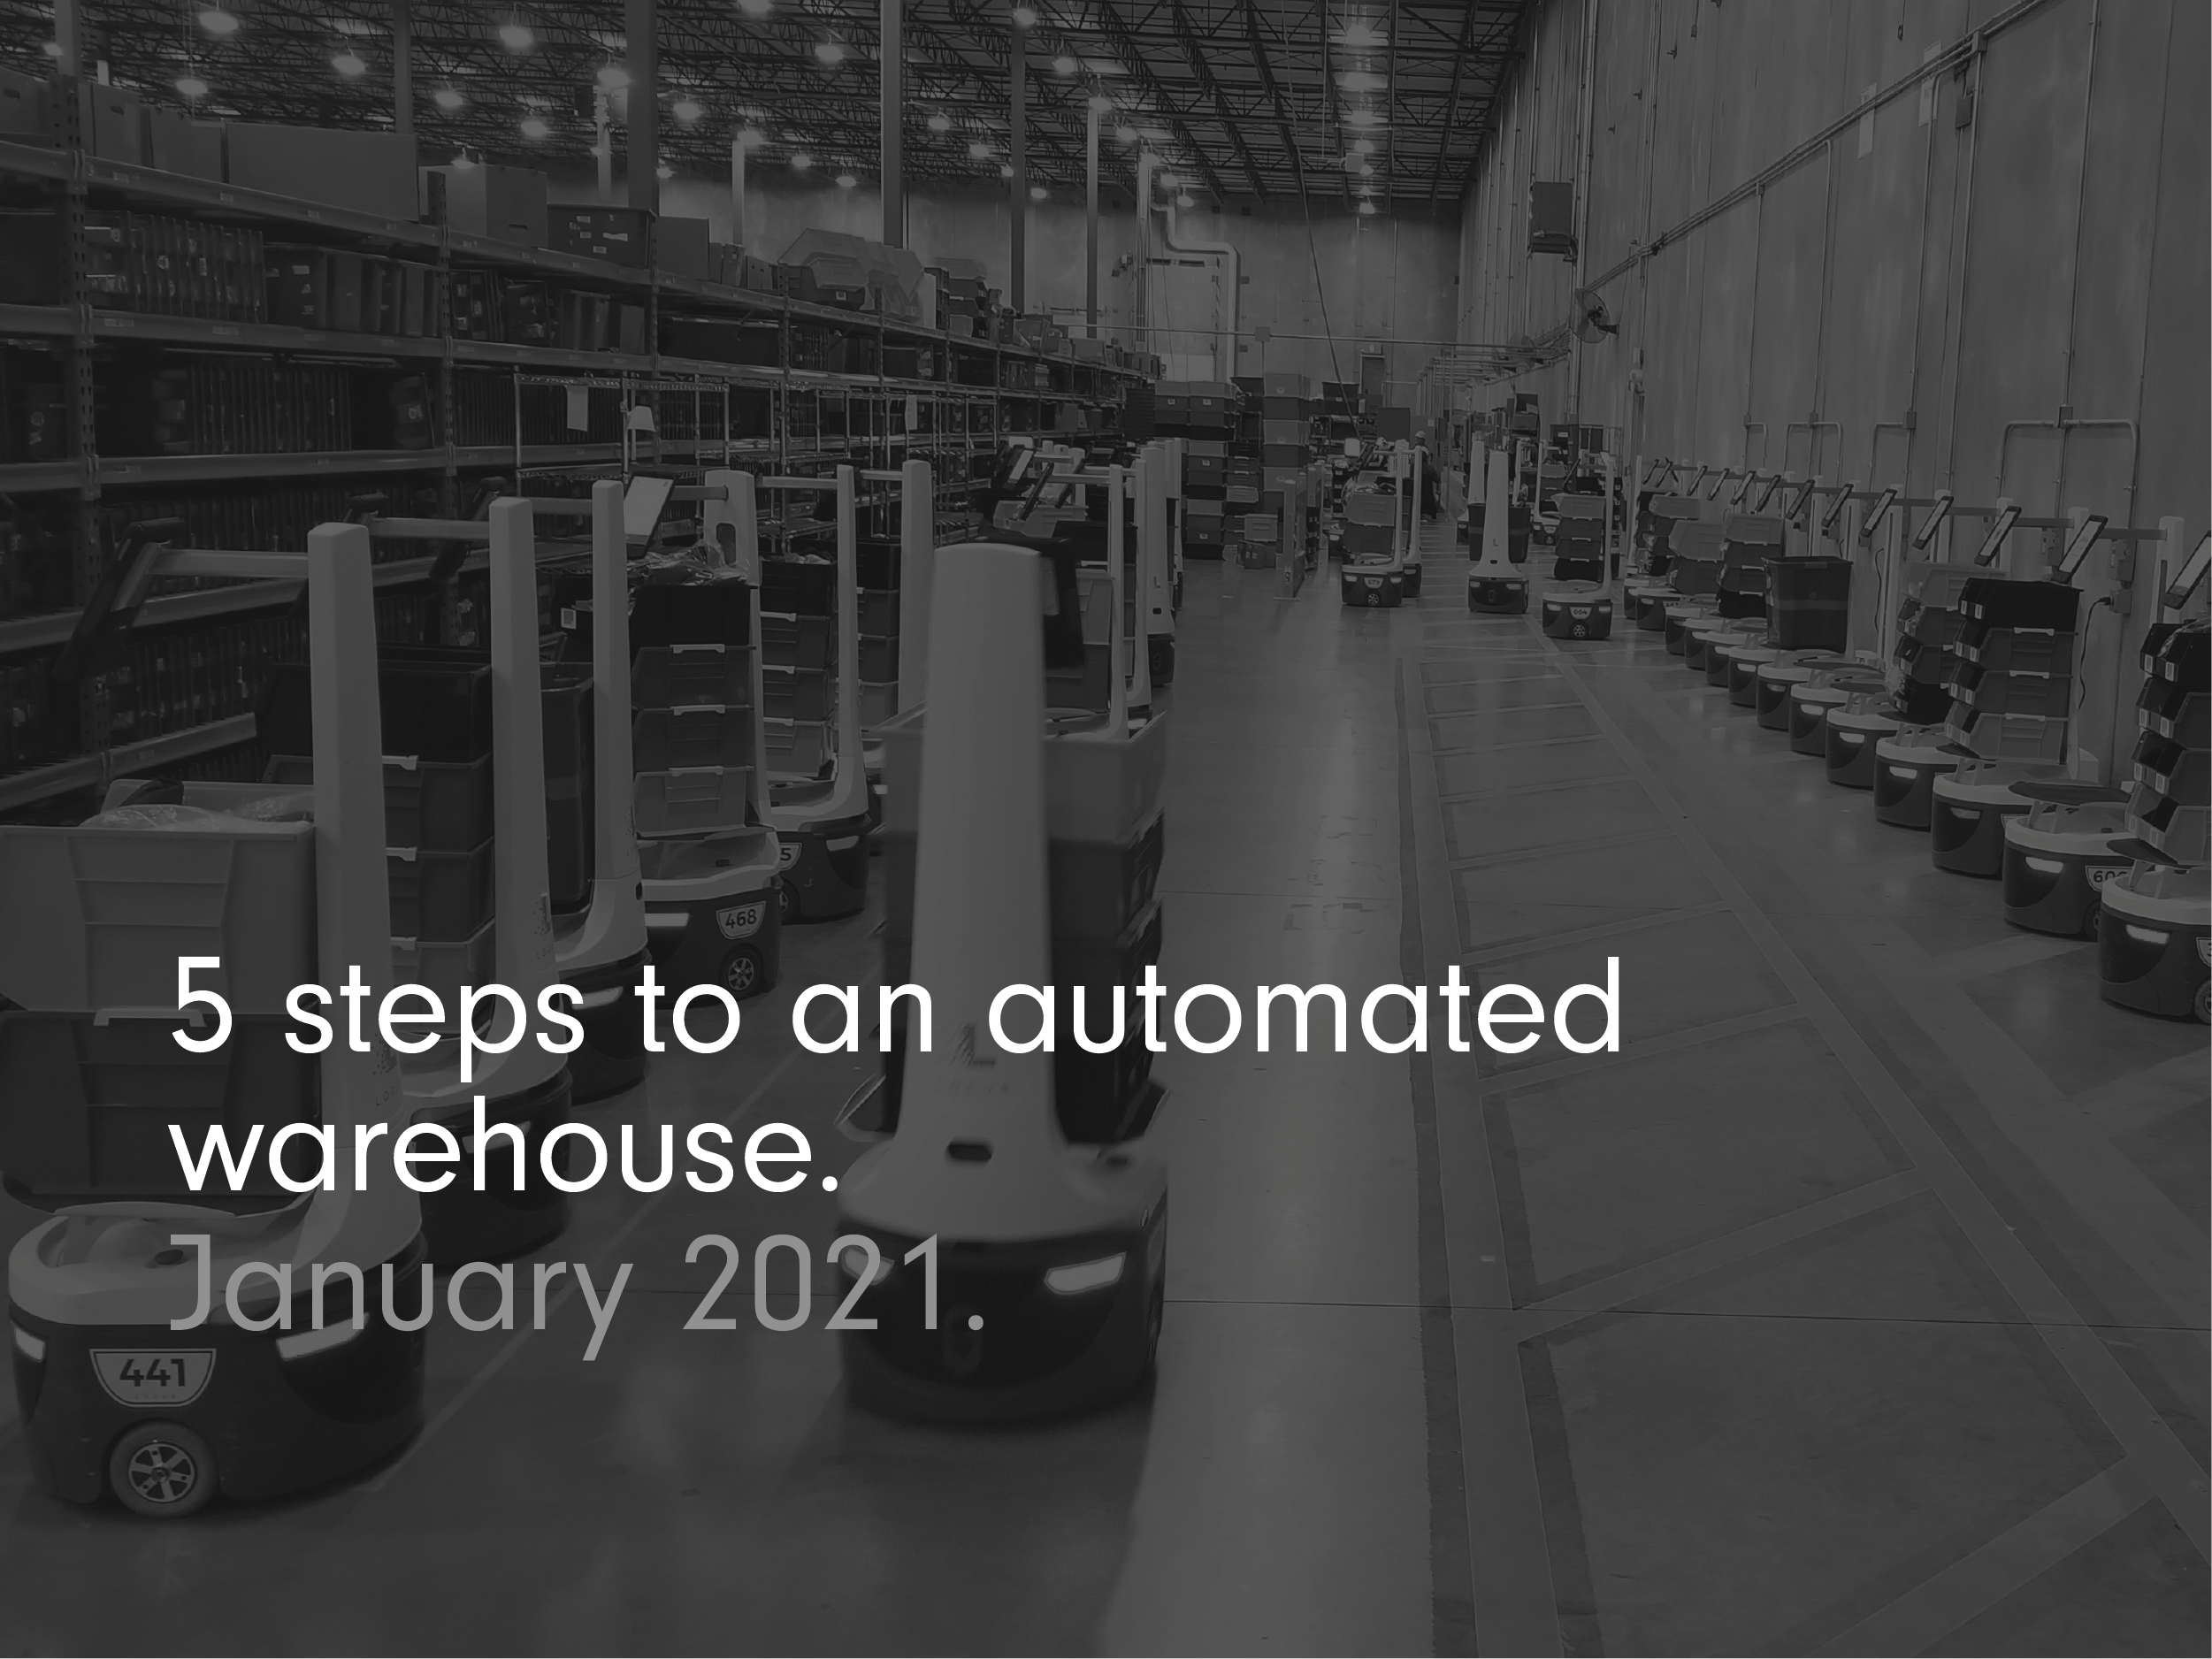 5 steps to an automated warehouse